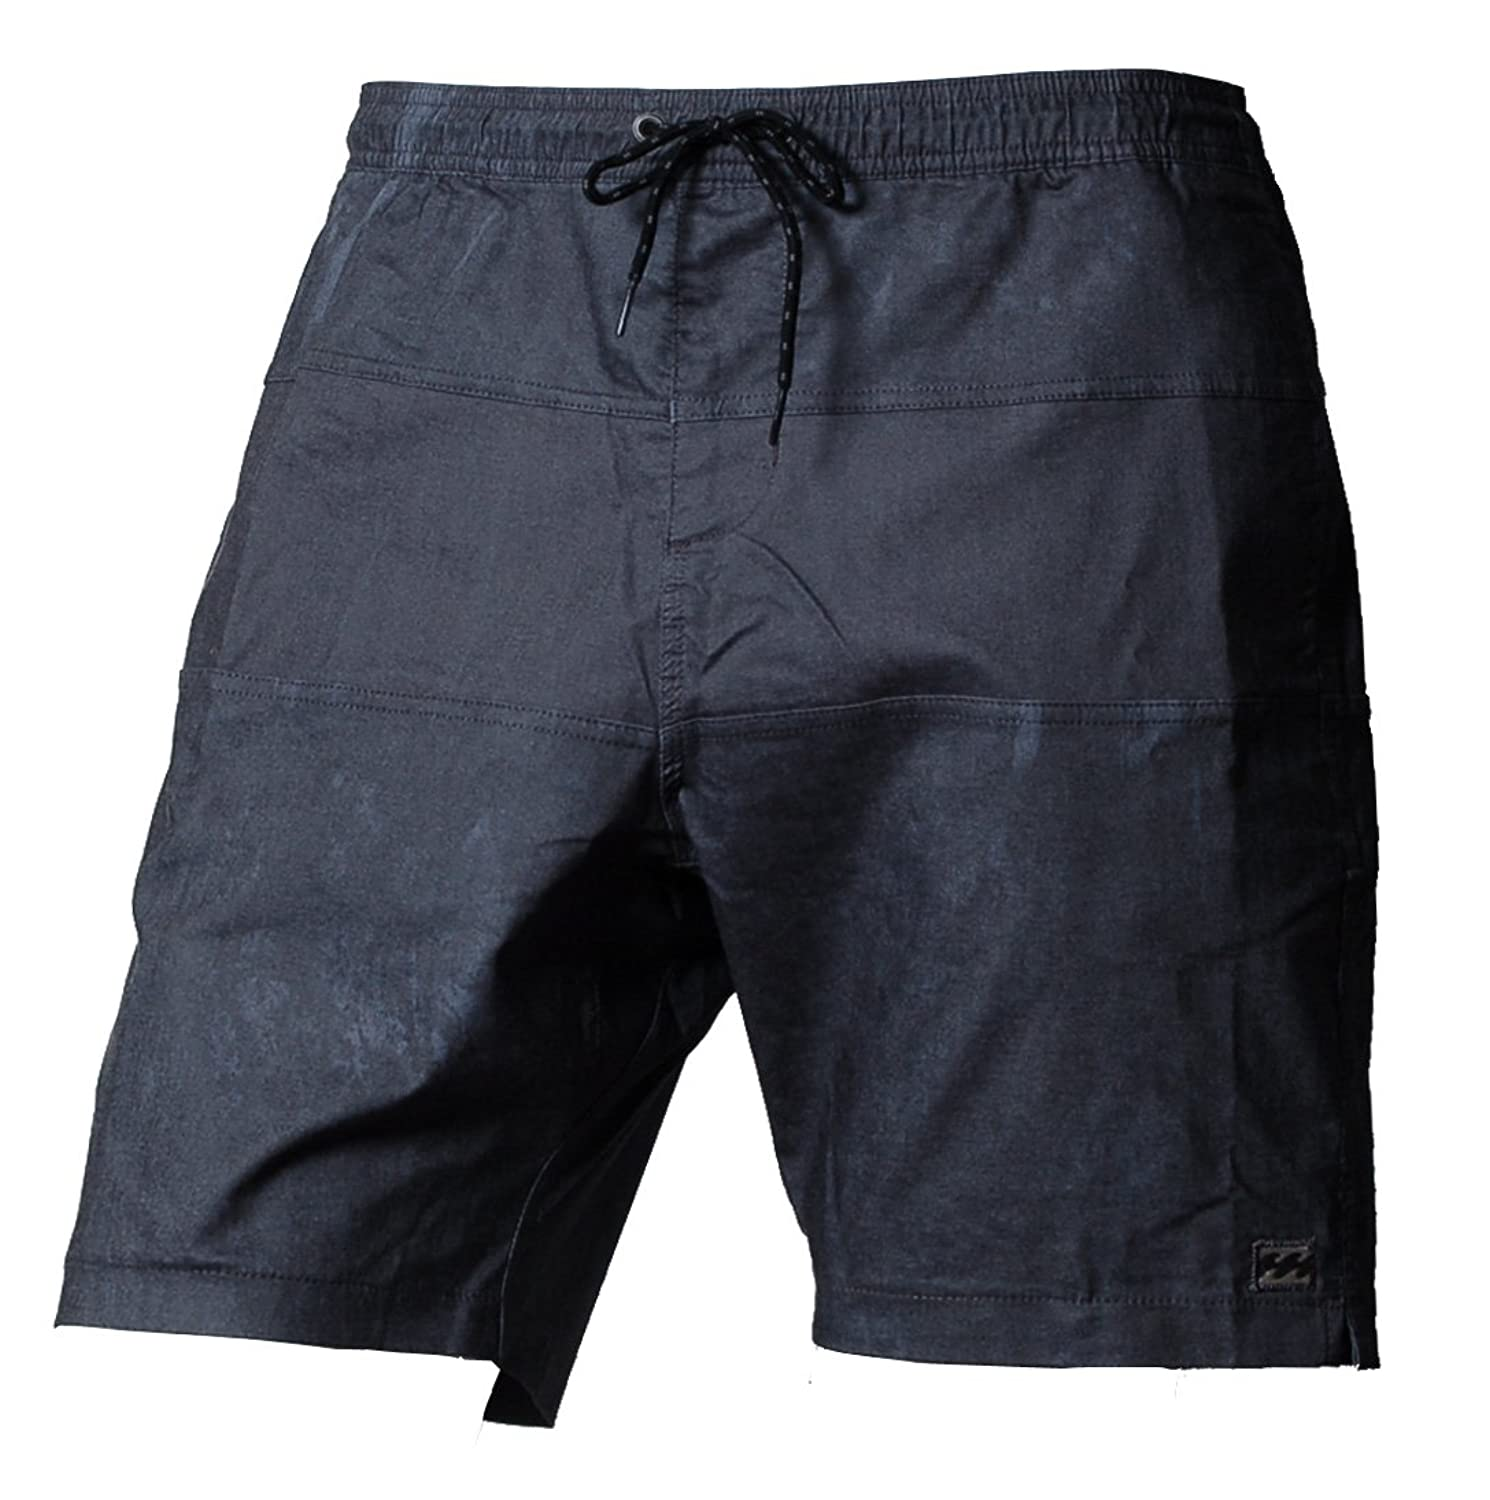 BILLABONG board short